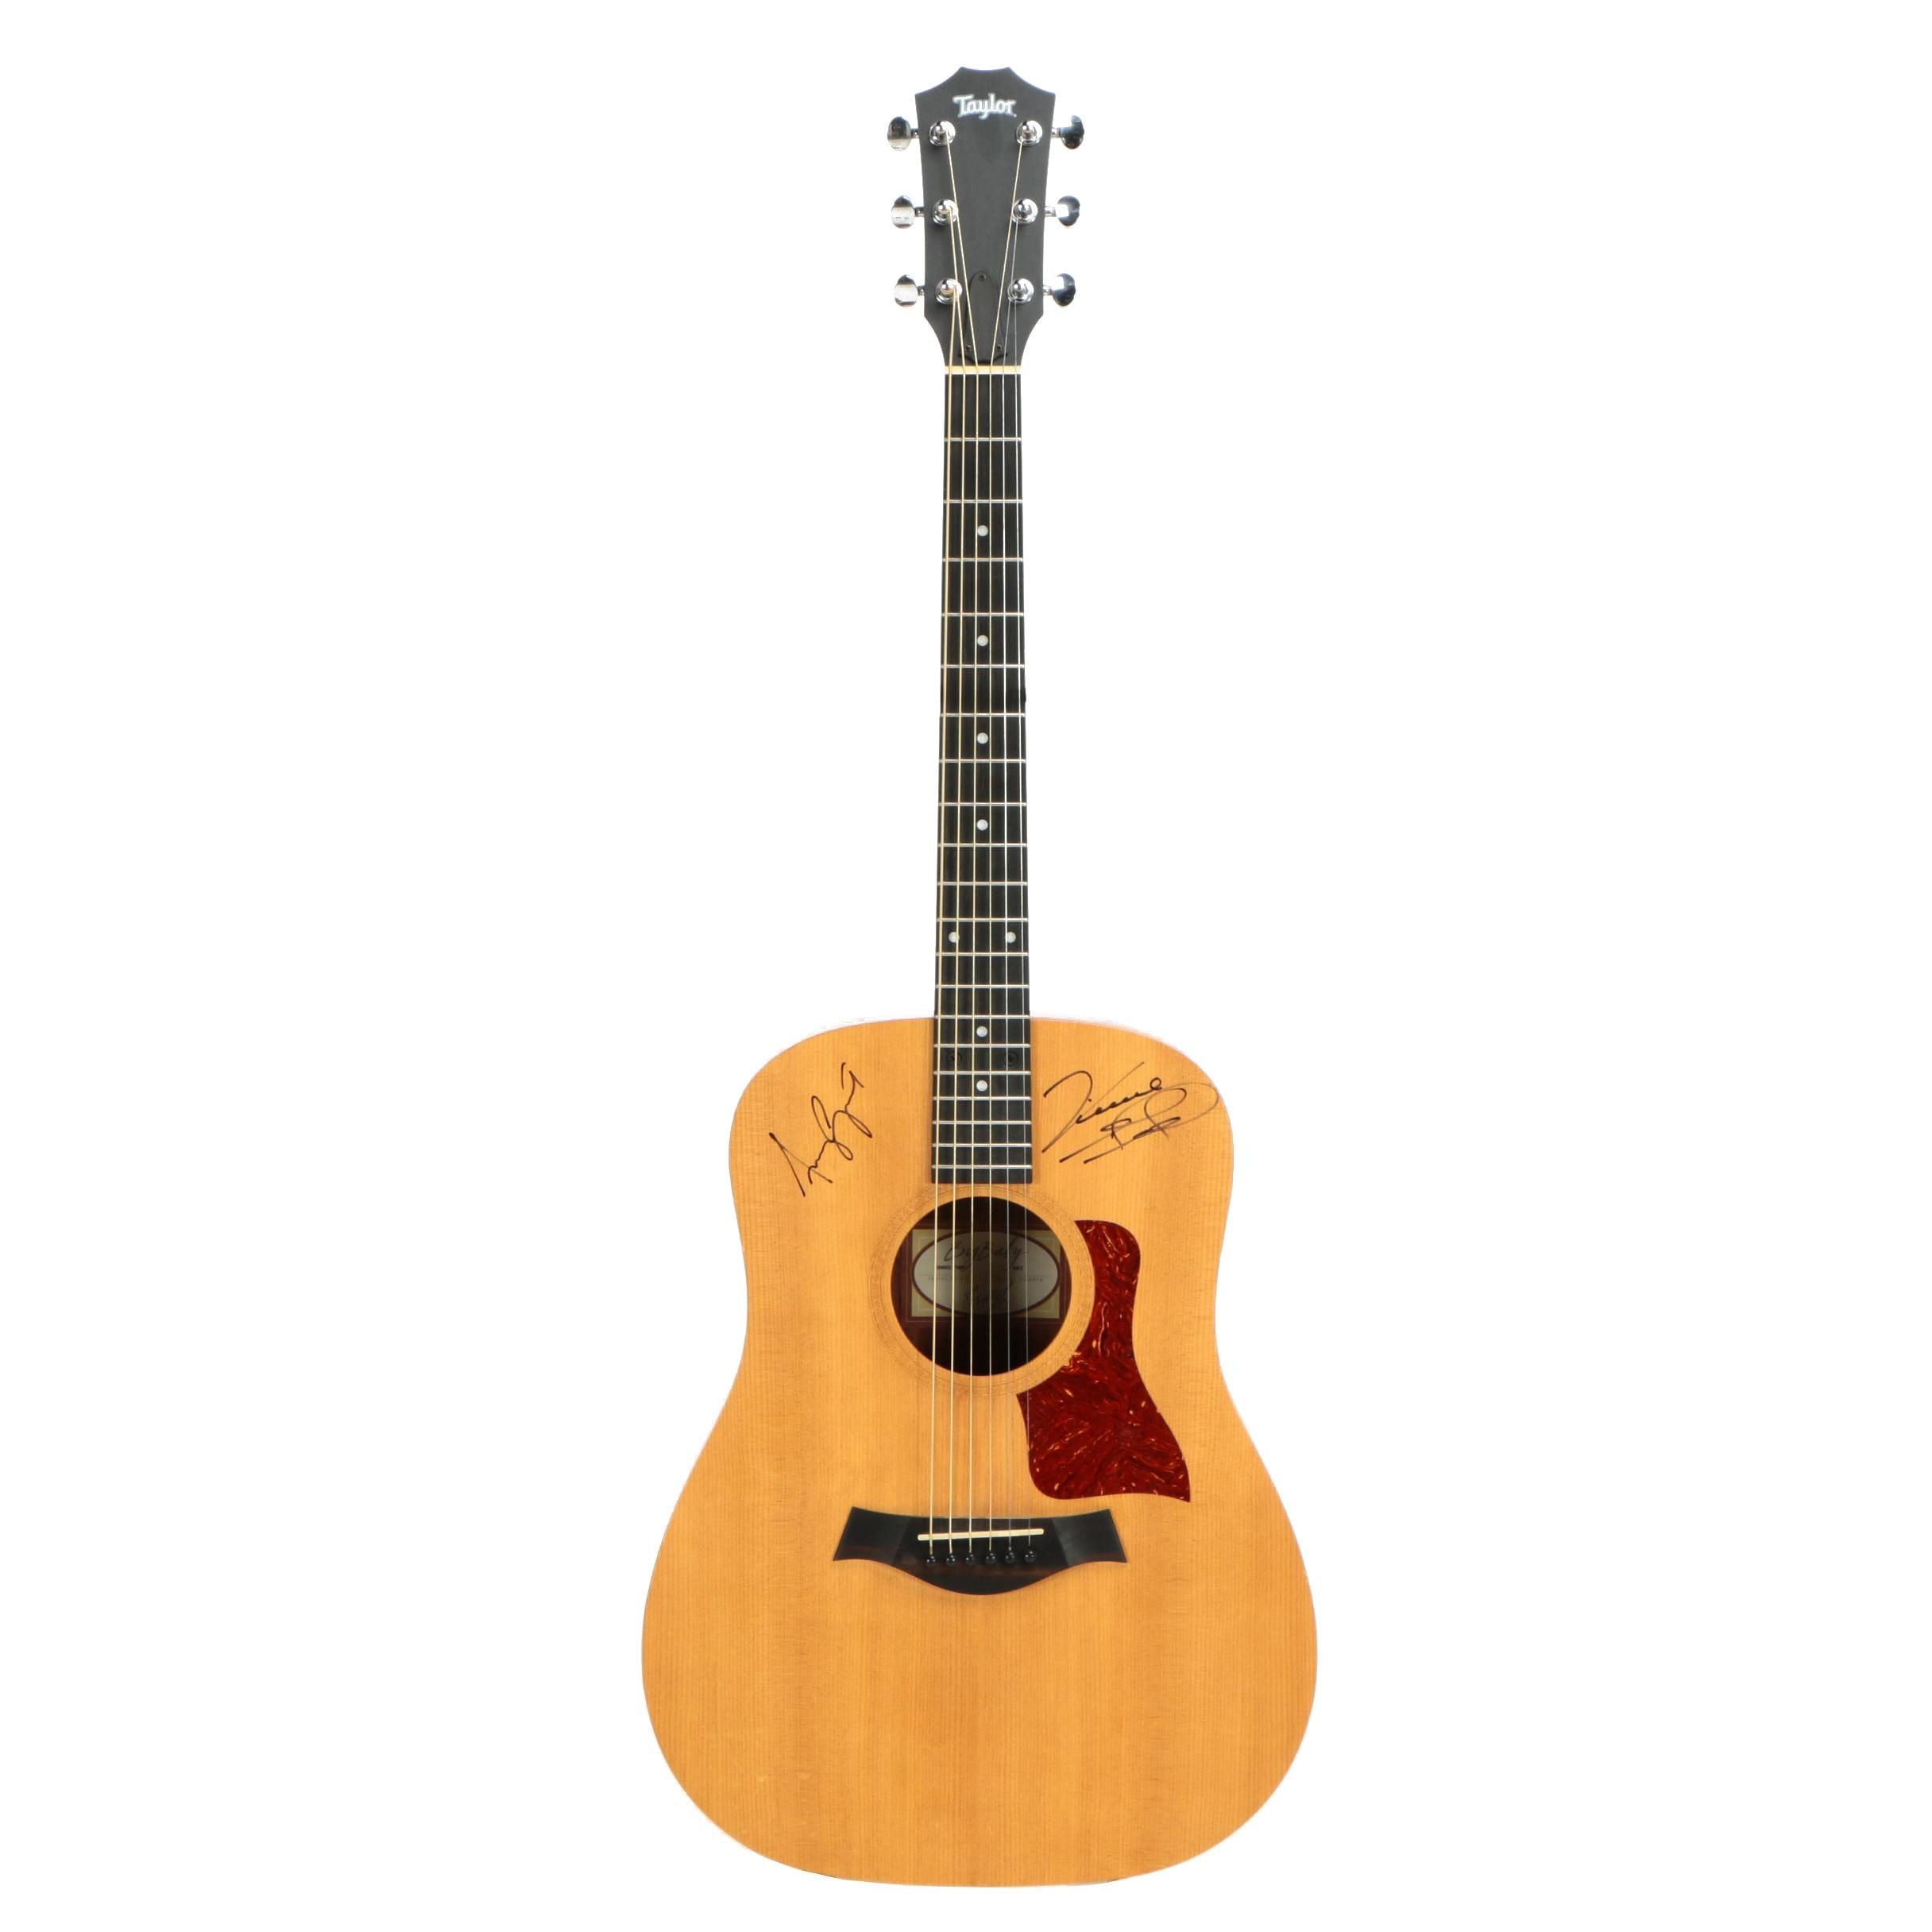 Vince Gill and Amy Grant Autographed Taylor Big Baby Acoustic Guitar, 2008